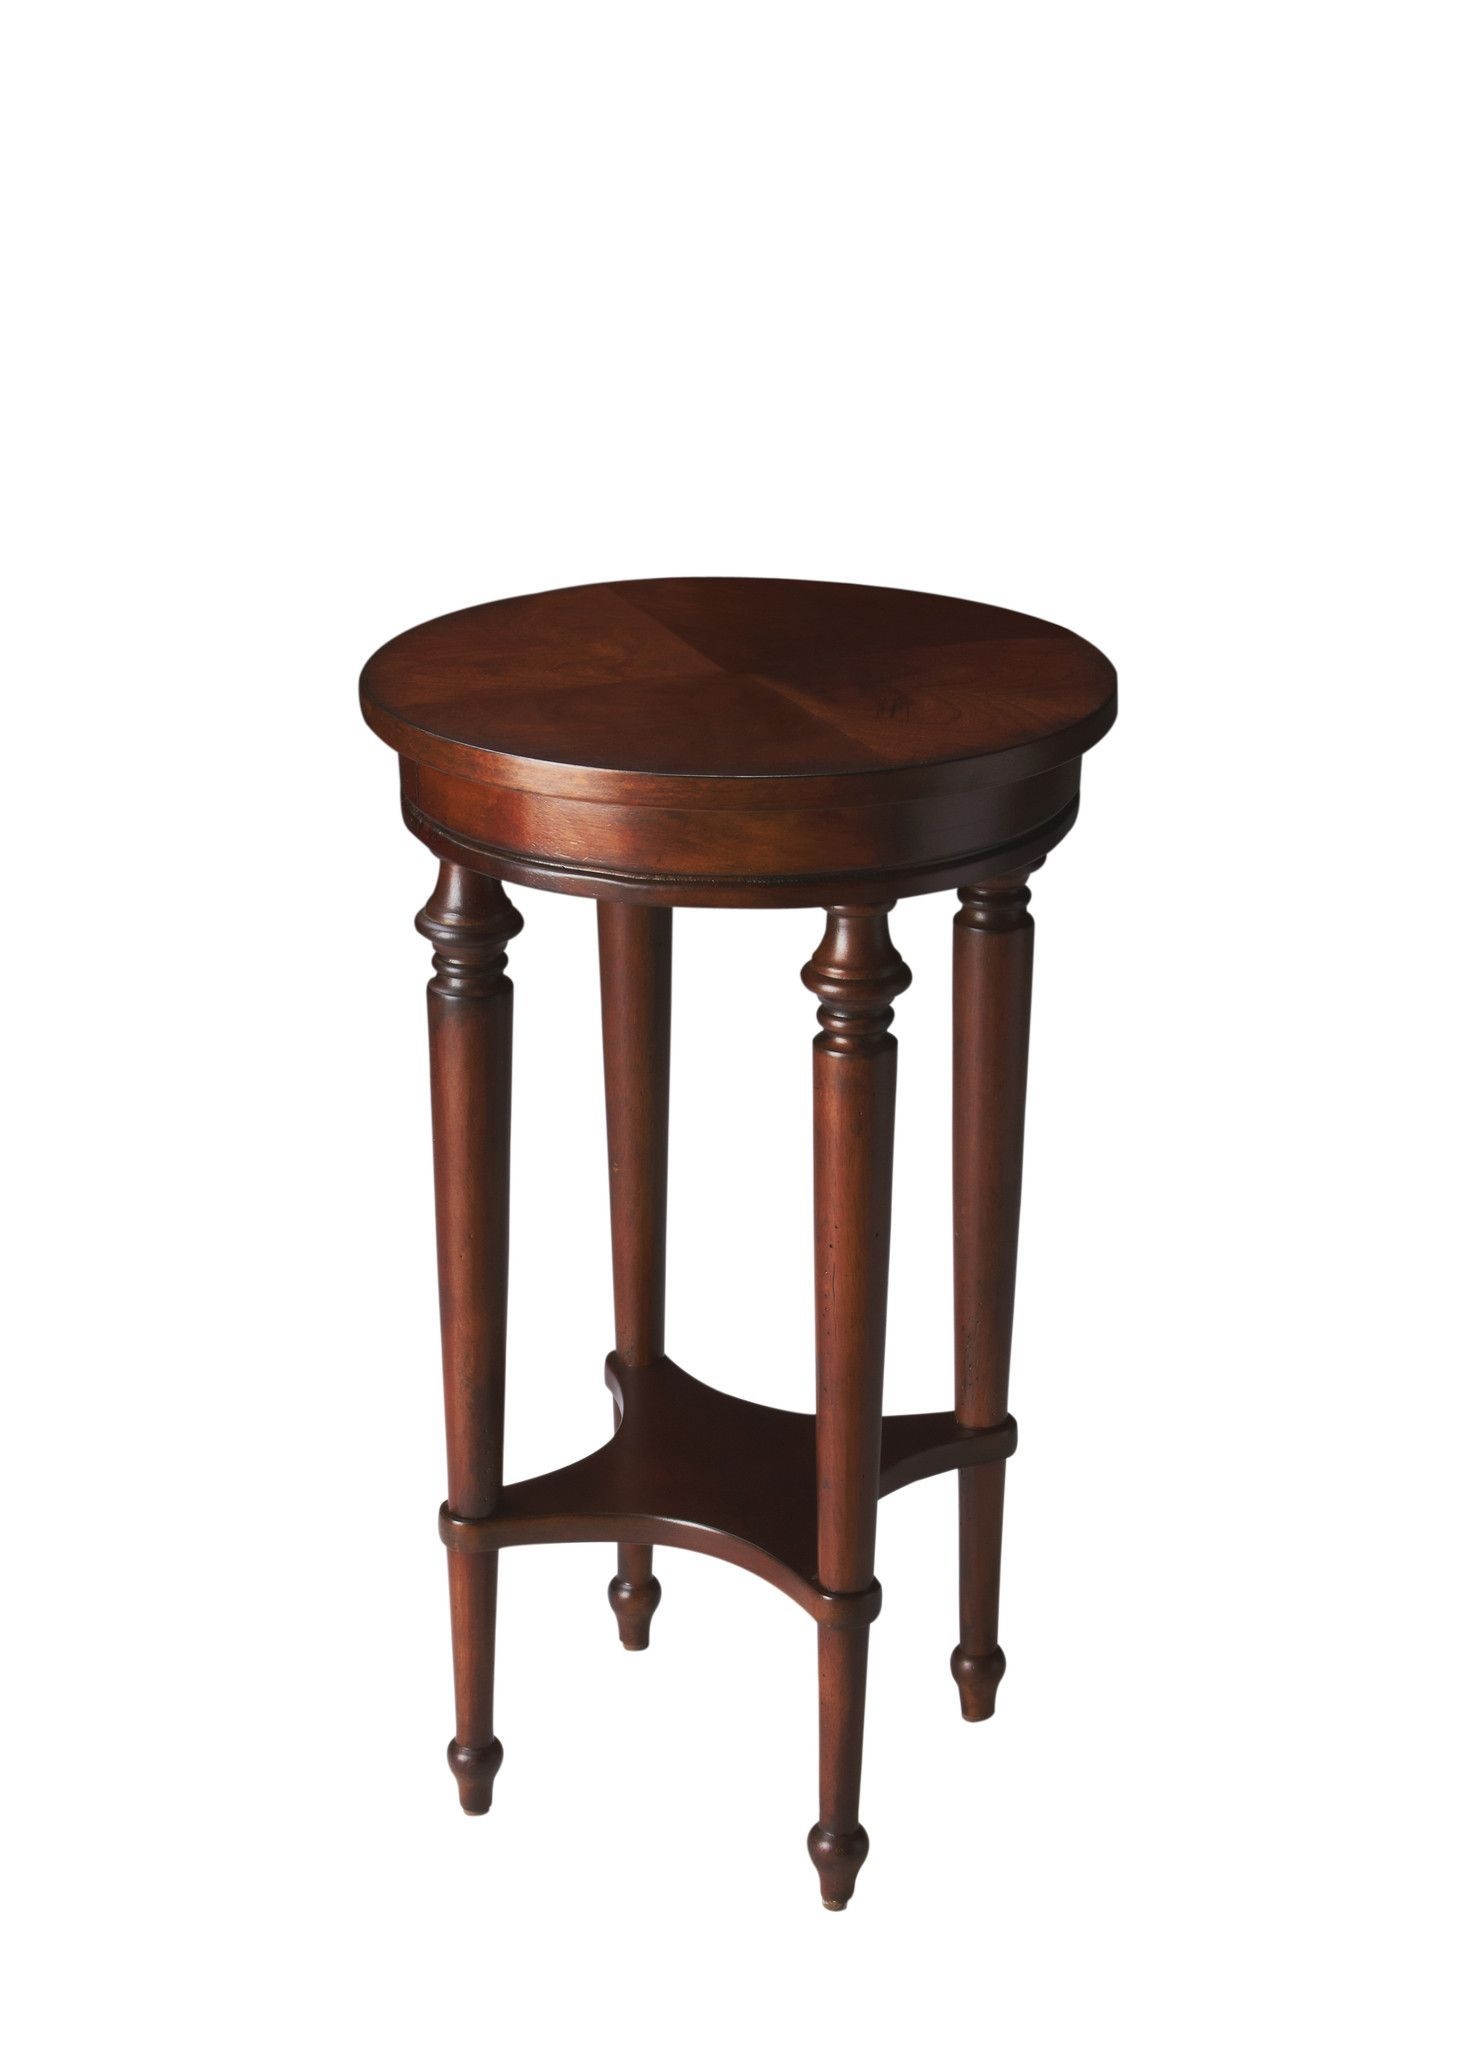 blackwell traditional round accent table dark brown cherry finish fitted nic covers furniture pieces farm style dining black acrylic bar towels linens for inch corner umbrella